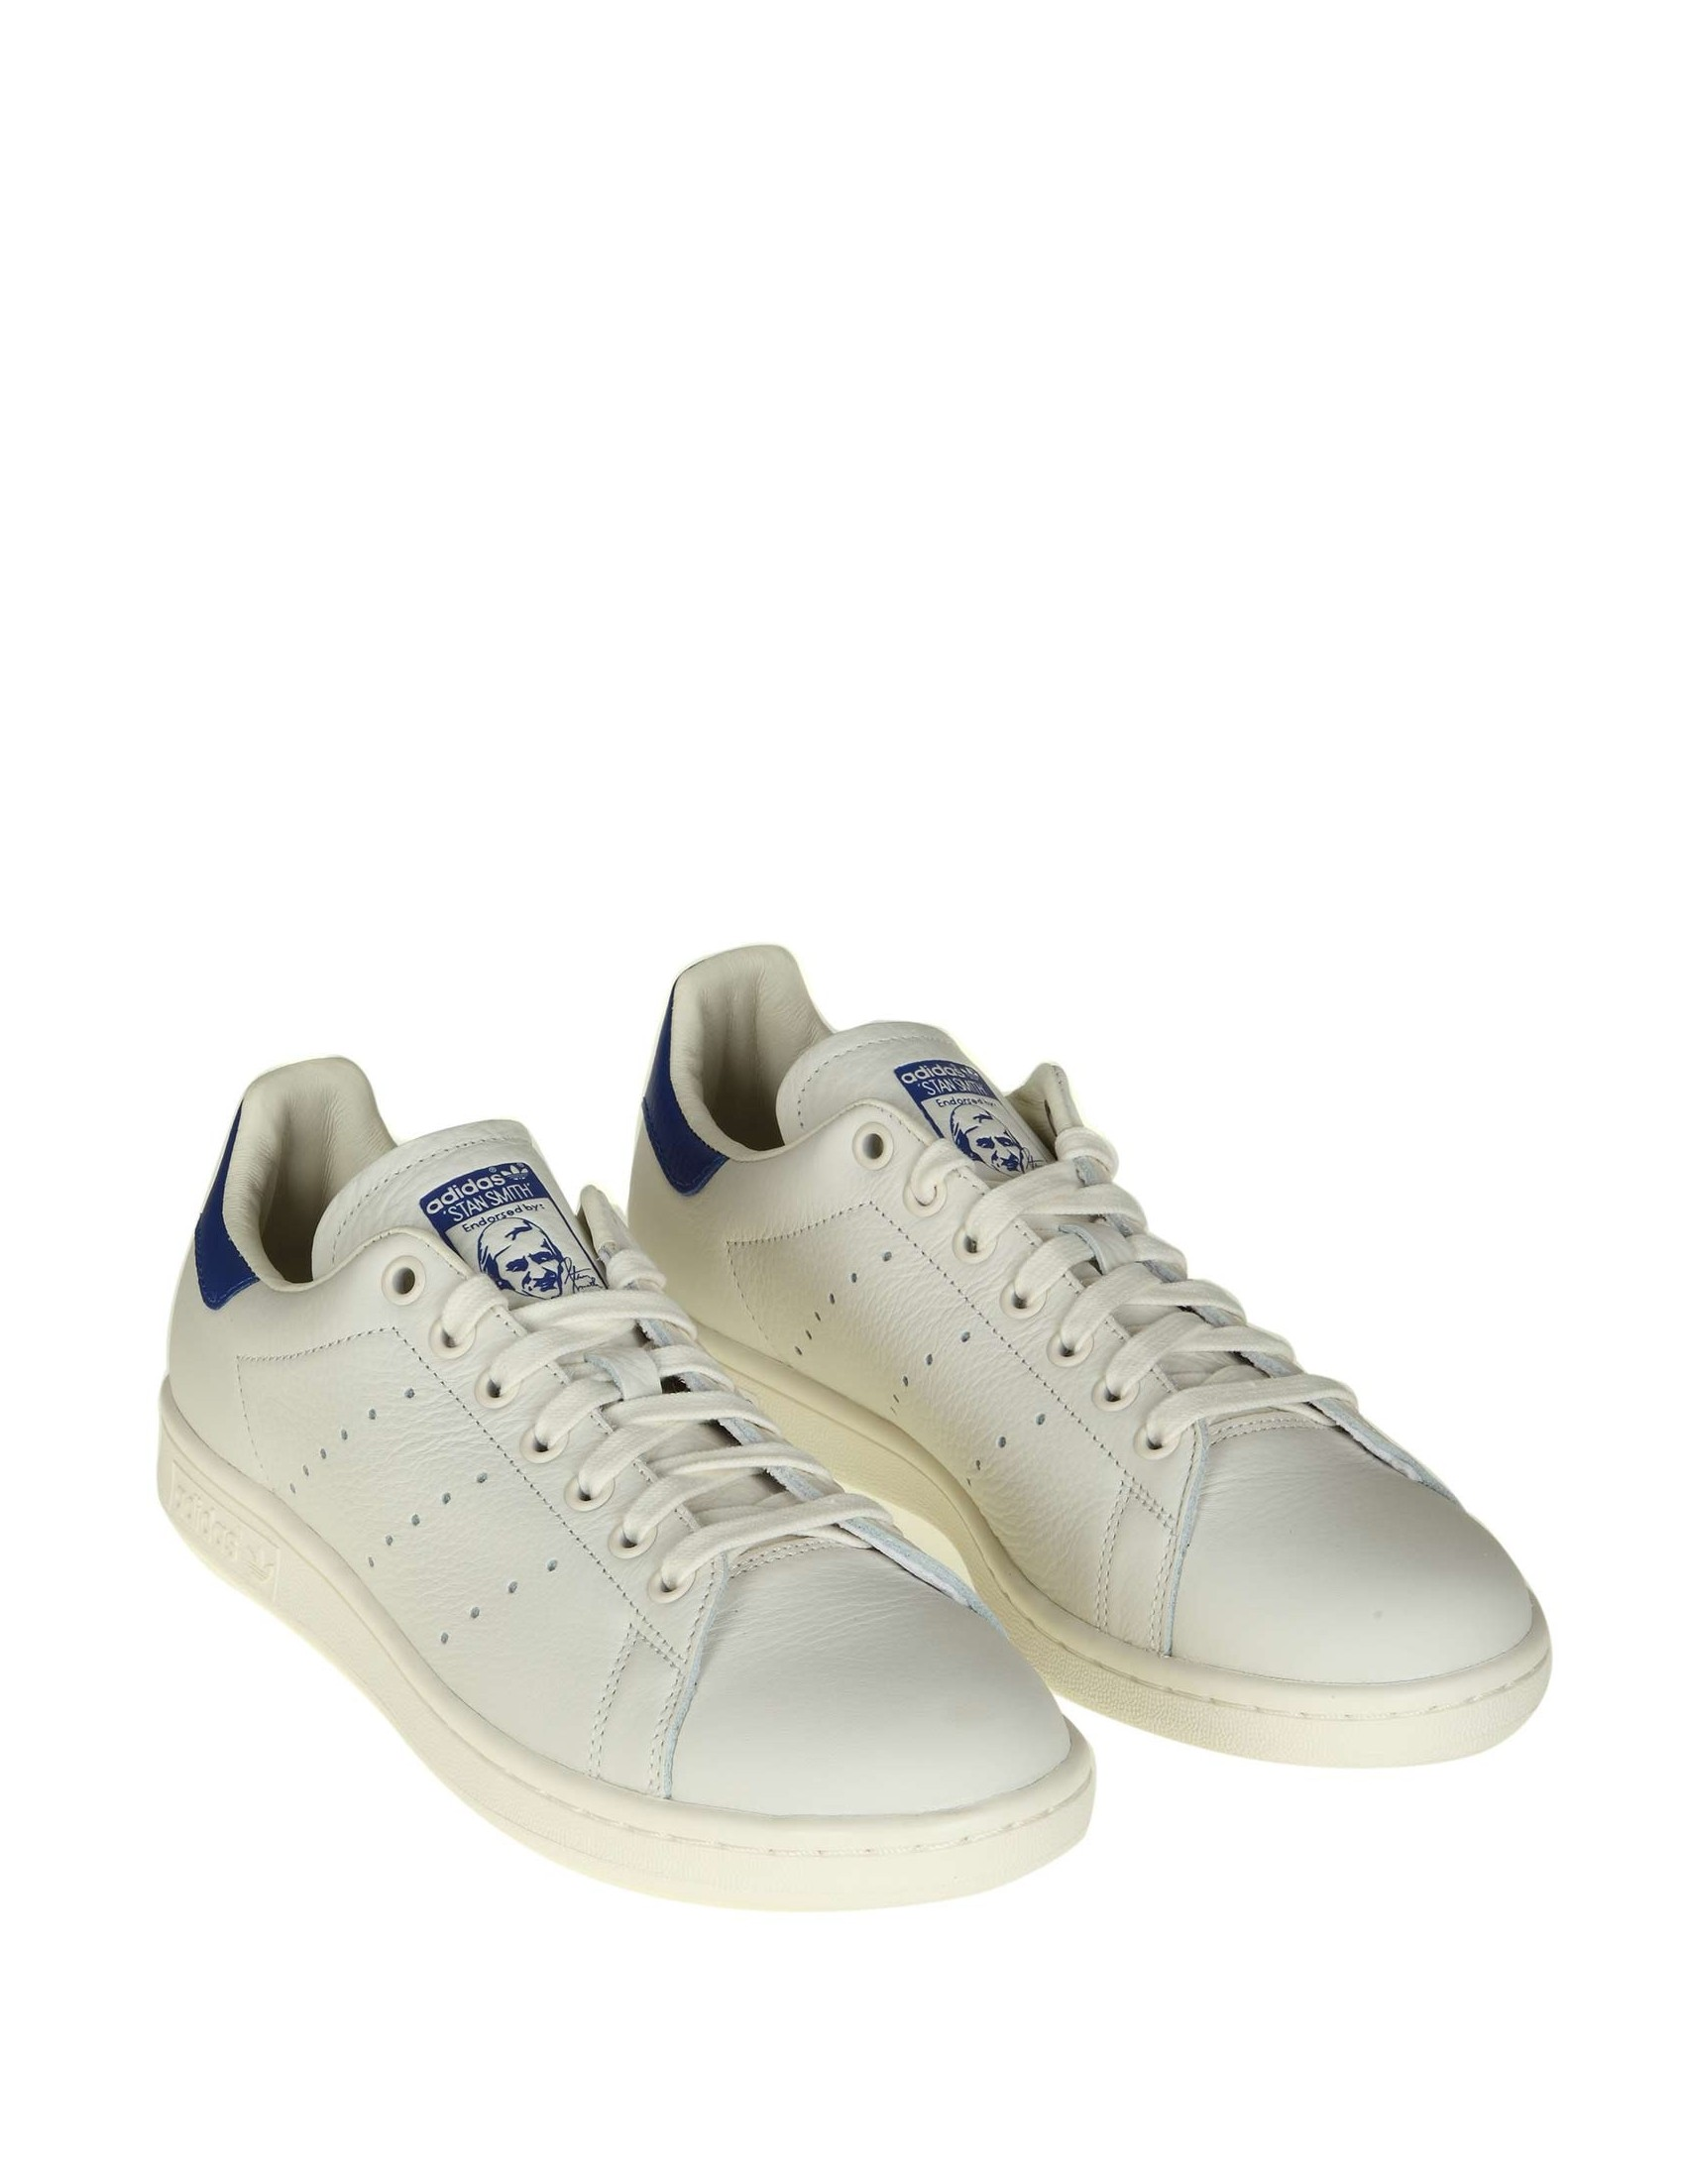 679061b2cab3 ADIDAS ORIGINALS SNEAKERS MAN STAN SMITH WHITE LEATHER BLUE LOW SHOE